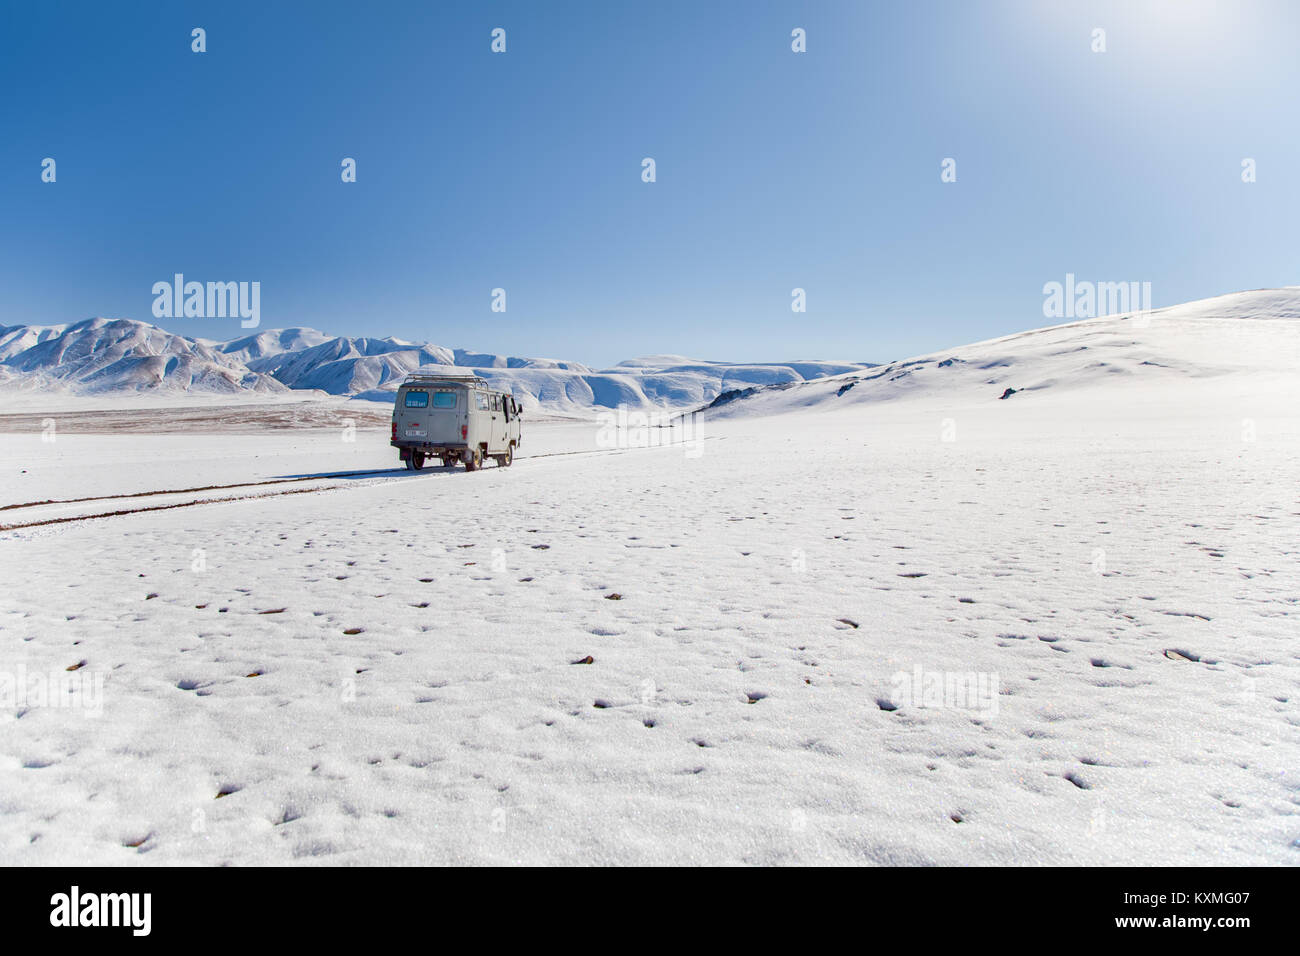 Russian van UAZ 452 camper dslr zoom lengs sigma 150-600mm snow winter Mongolia snowy mountains - Stock Image